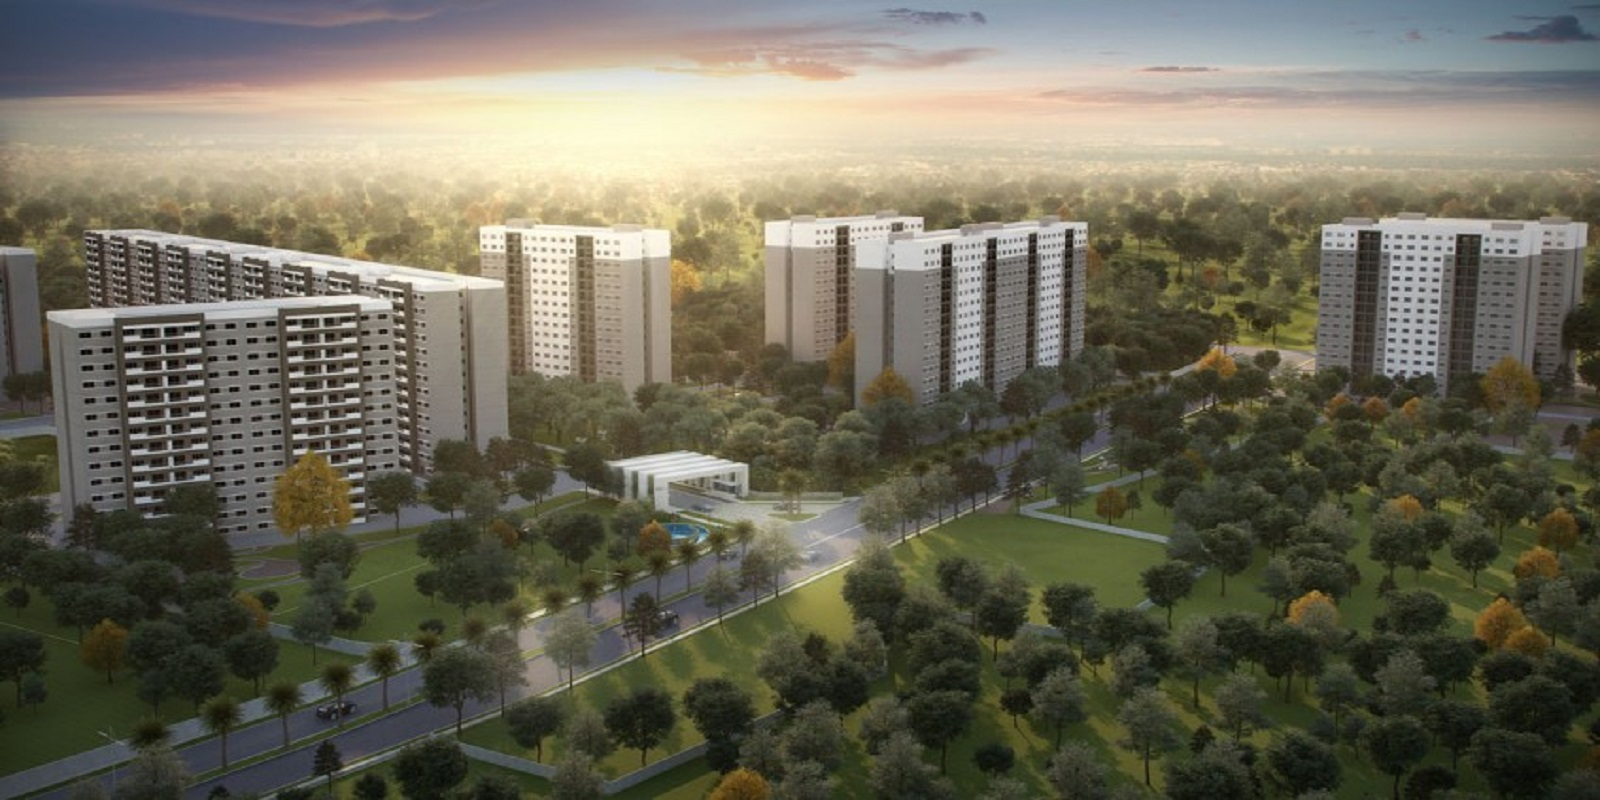 sobha tropical greens phase 23 wing 25 to 28 project large image2